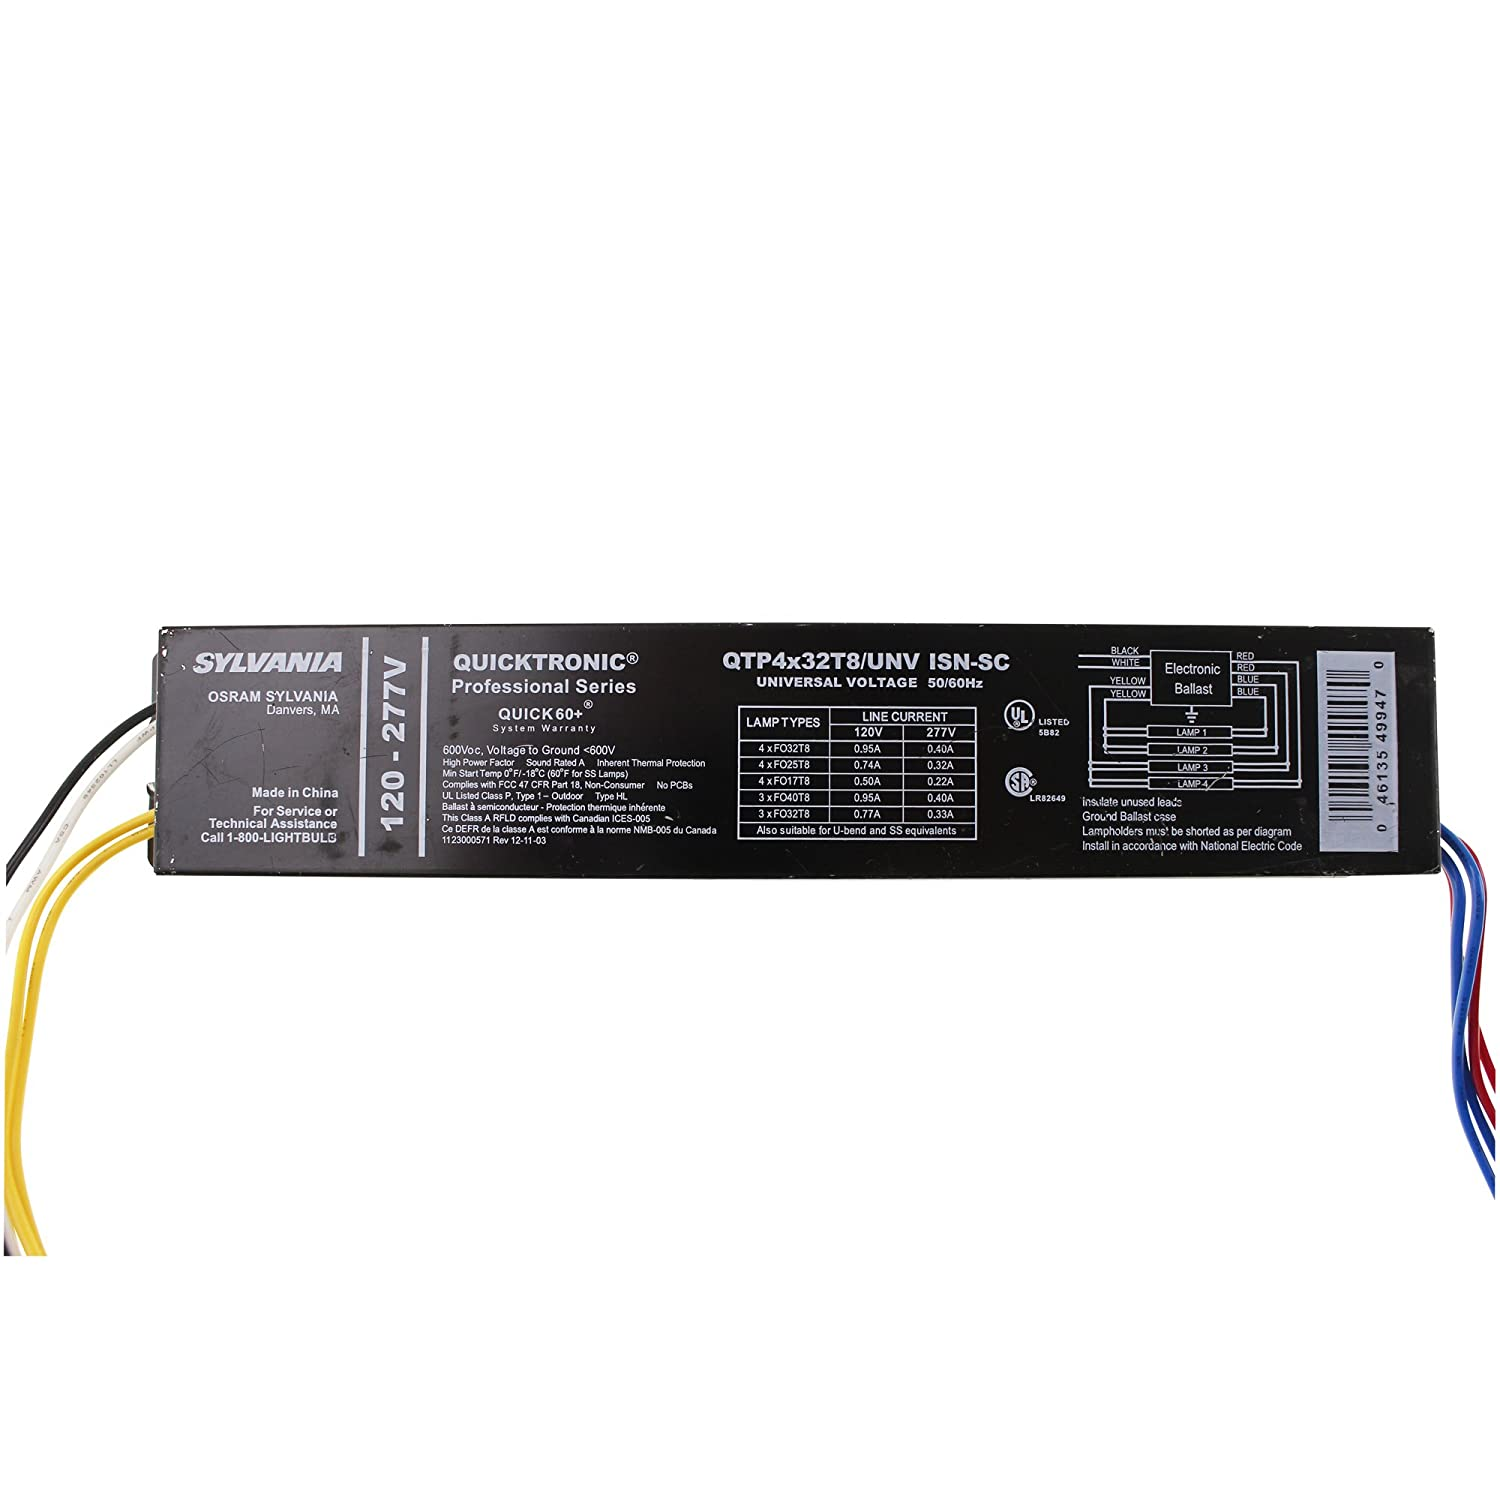 OSRAM SYLVANIA QTP4x32T8/UNV-ISN-SC (49947) 4 FLUORESCENT Ballasts- Fluorescent-HID - Electrical Ballasts - Amazon.com